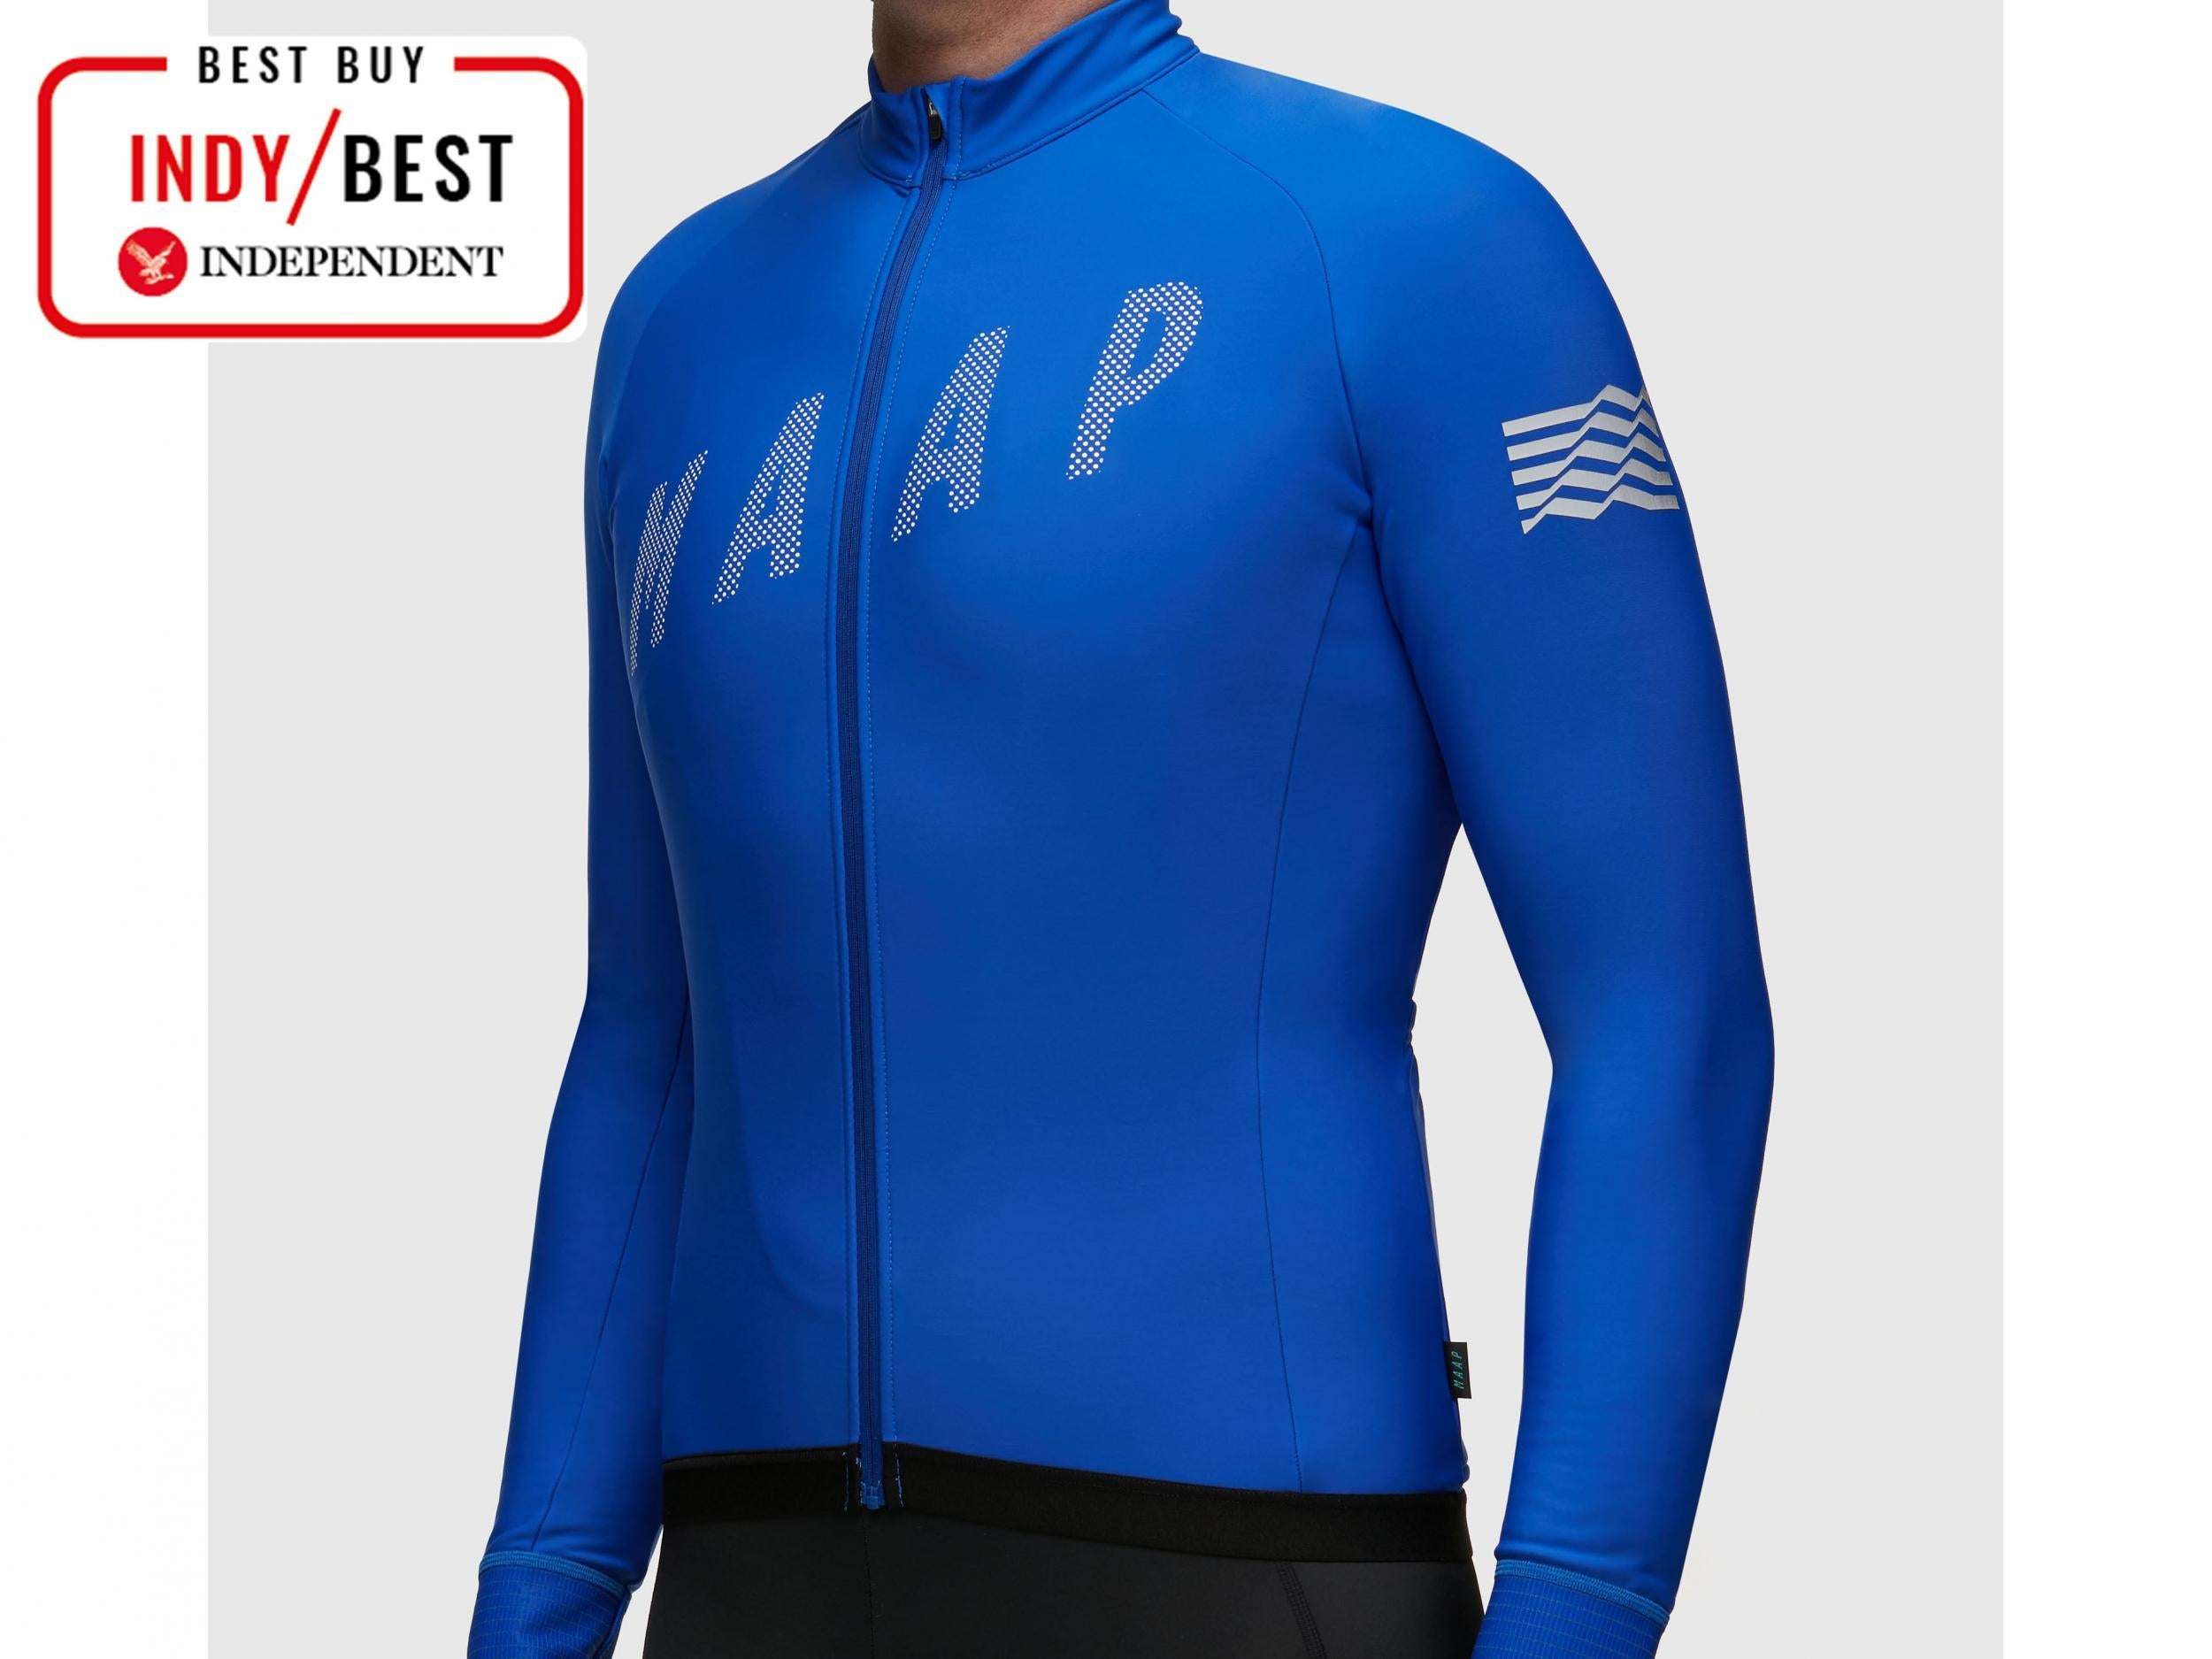 4d876af3fe4 Aussie firm Maap is determined to brighten up our winter with this stunning  azure outfit. The cut is slim without being restrictive and the lightly  fleeced ...